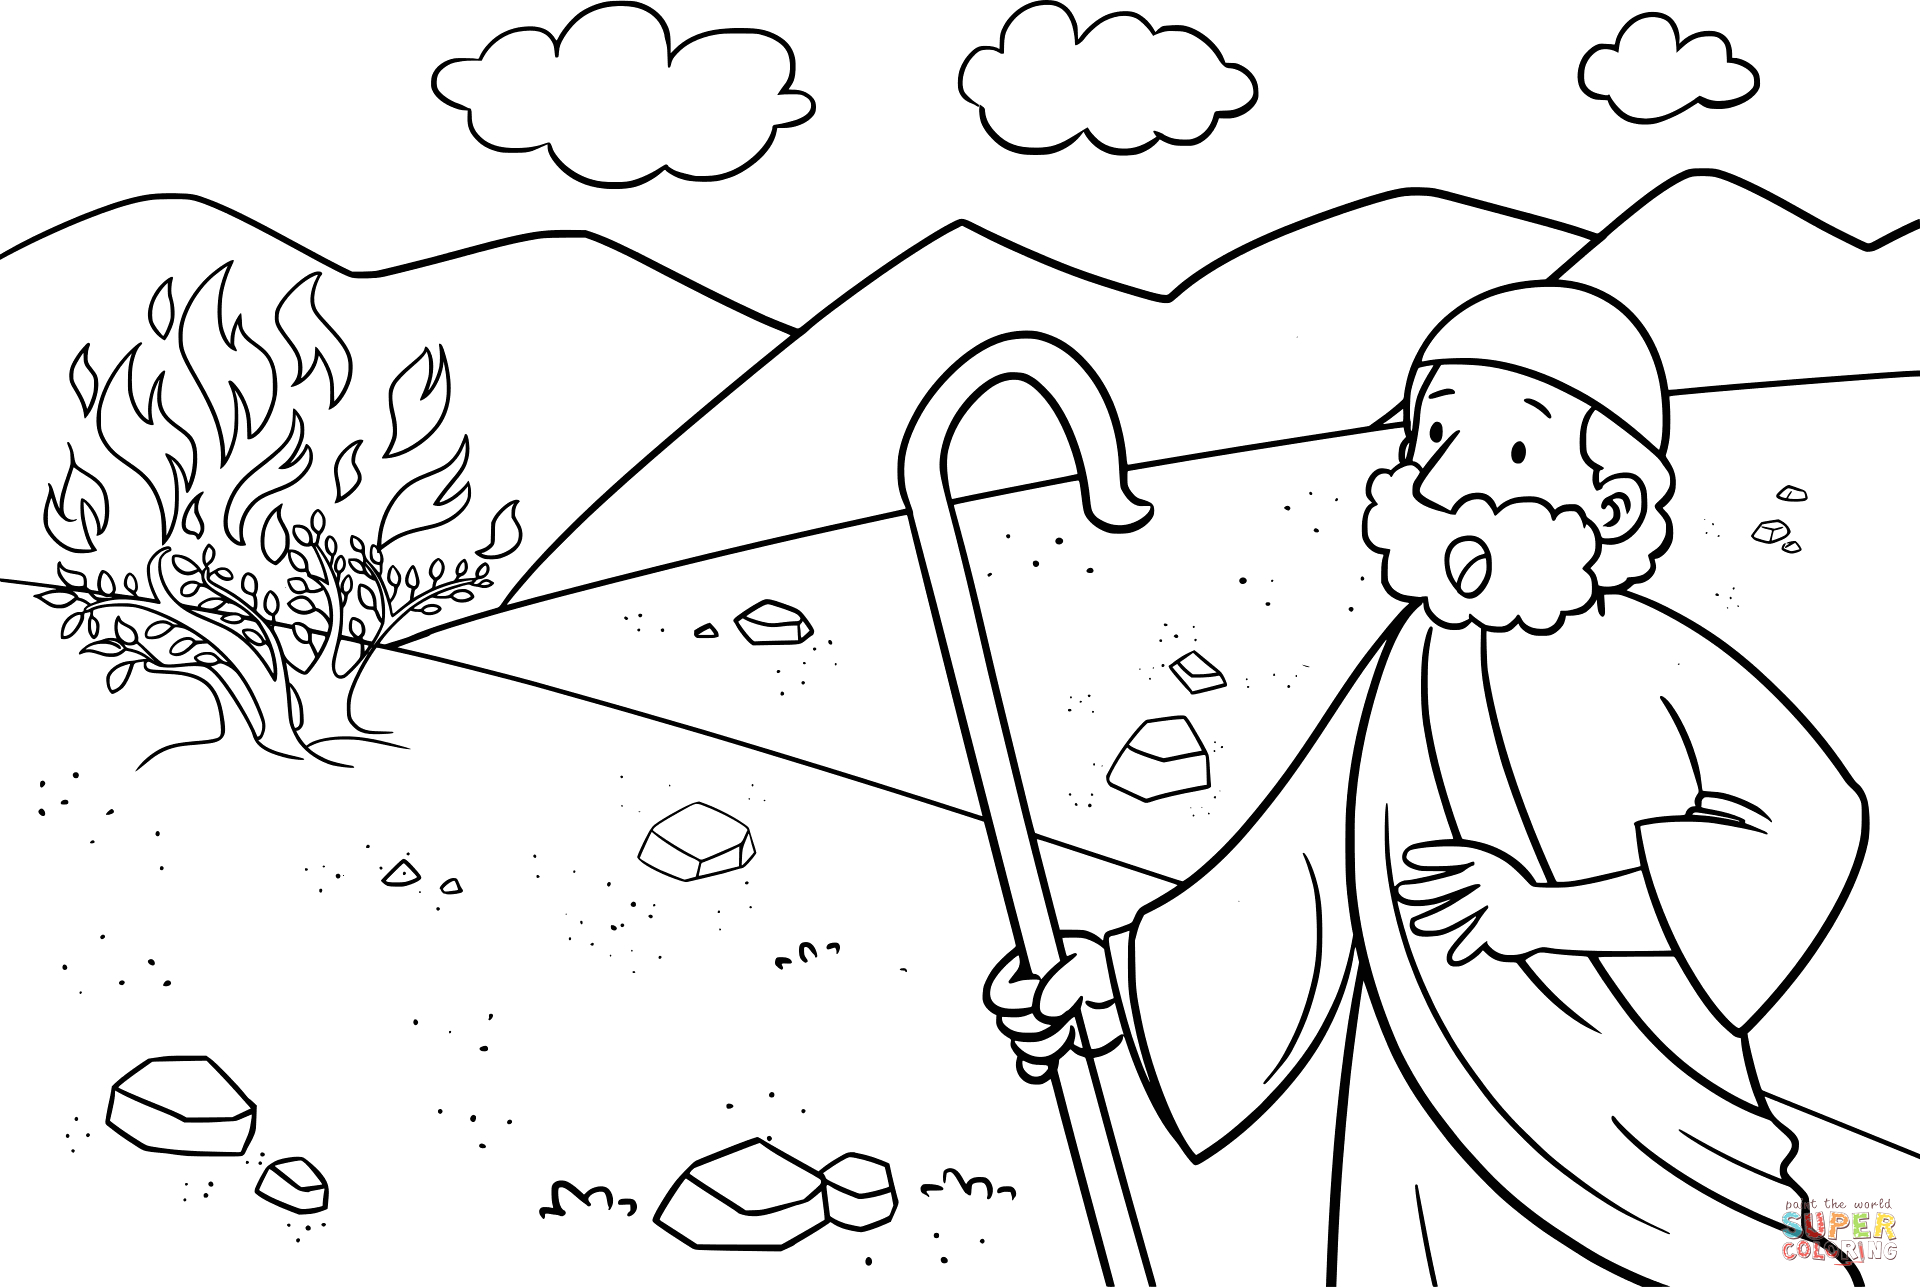 Moses and the Burning Bush Coloring Page Moses & the Burning Bush Coloring Page